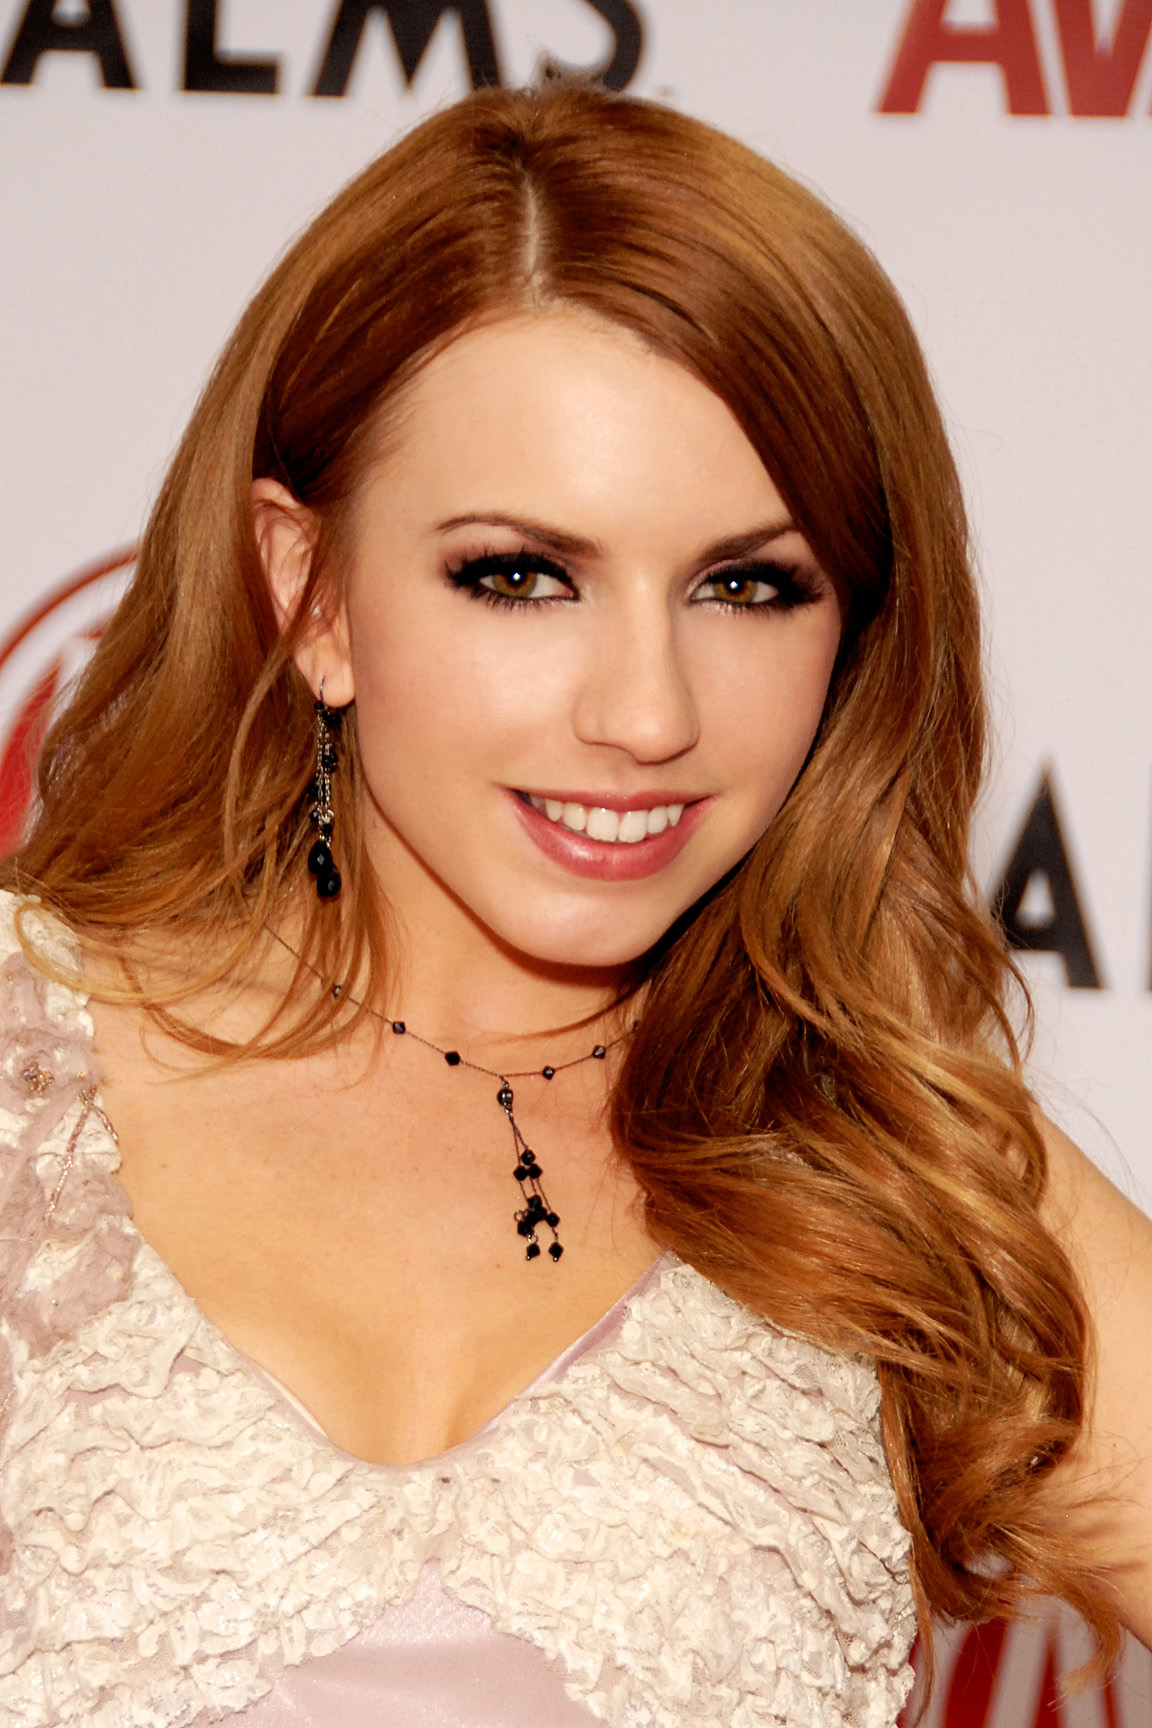 Description Lexi Belle 2 2011.jpg